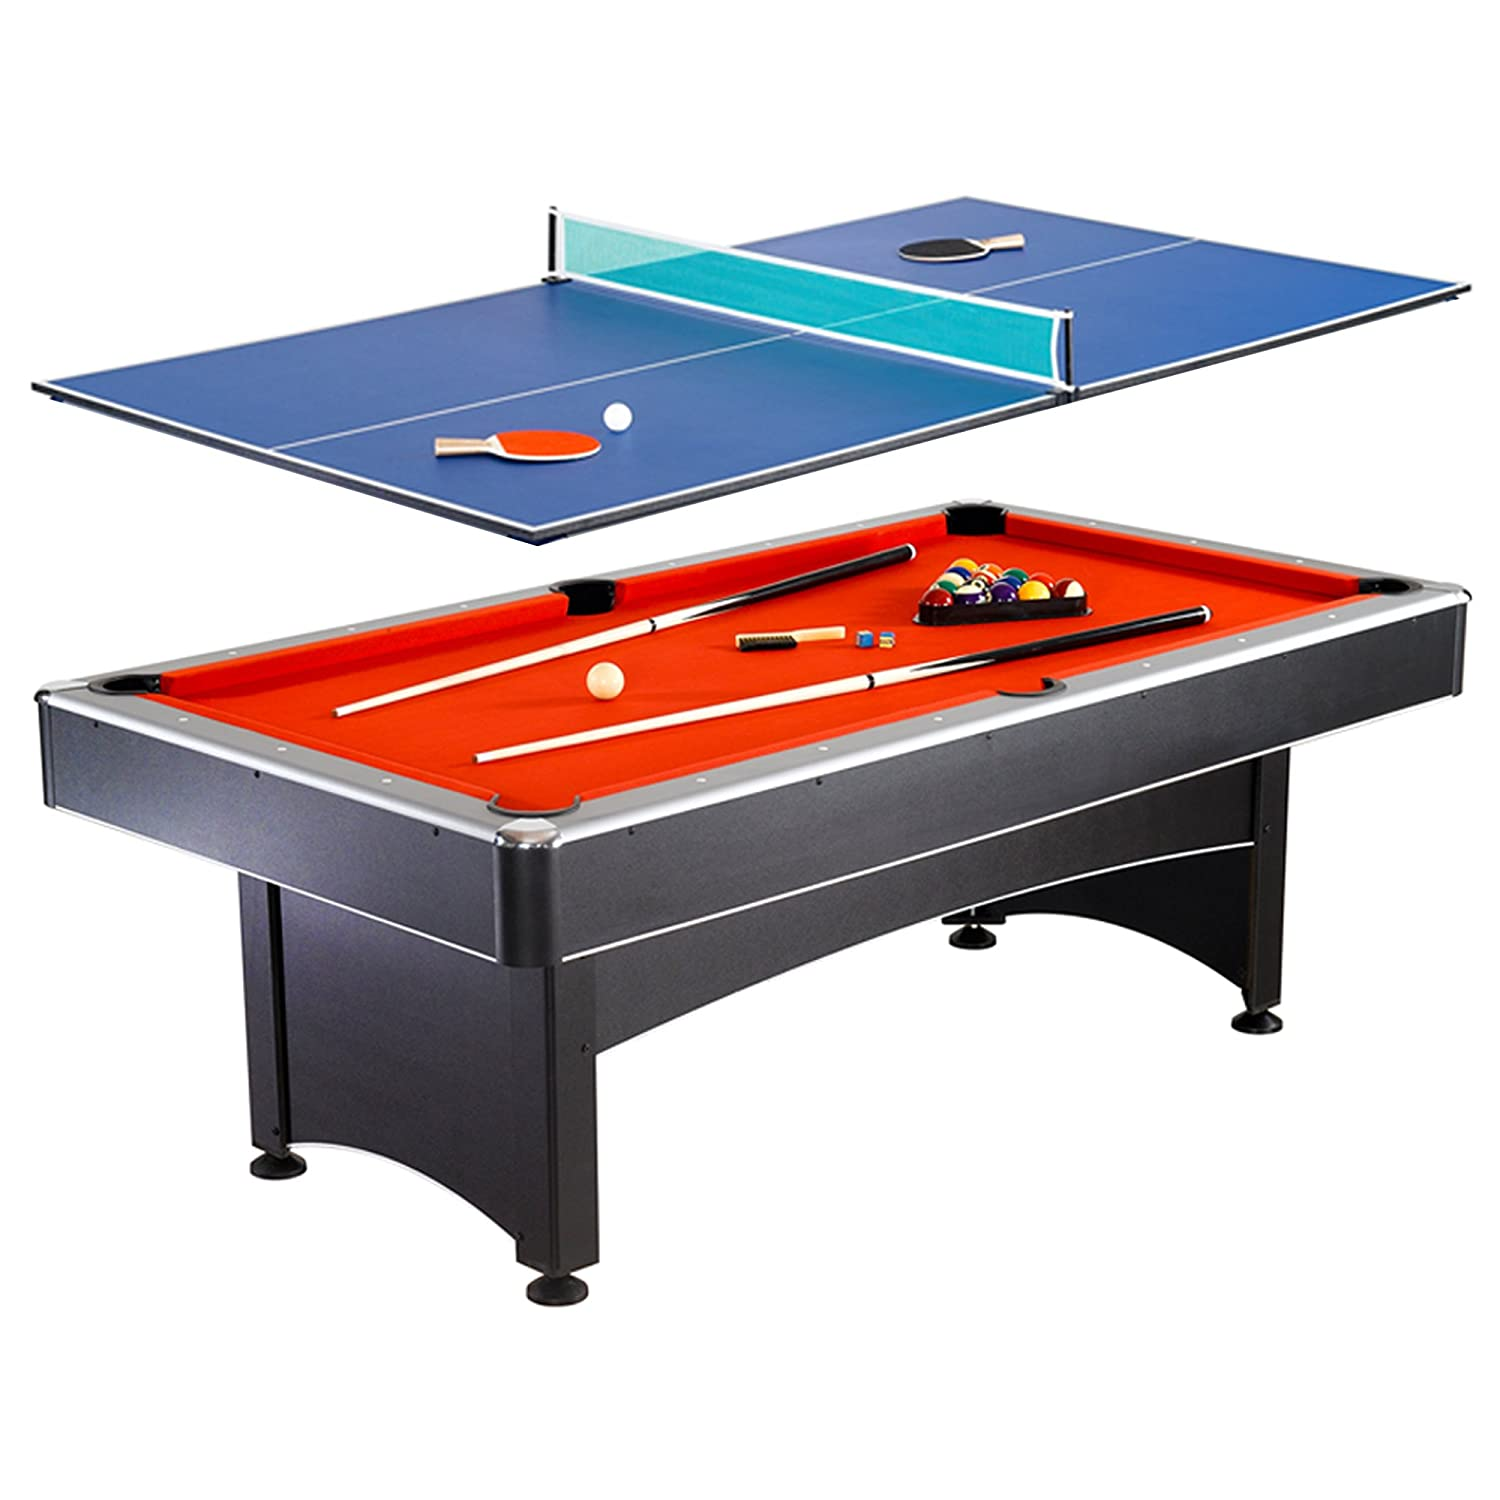 Pool & Billiards Tables | Amazon.com: Pool & Billiards